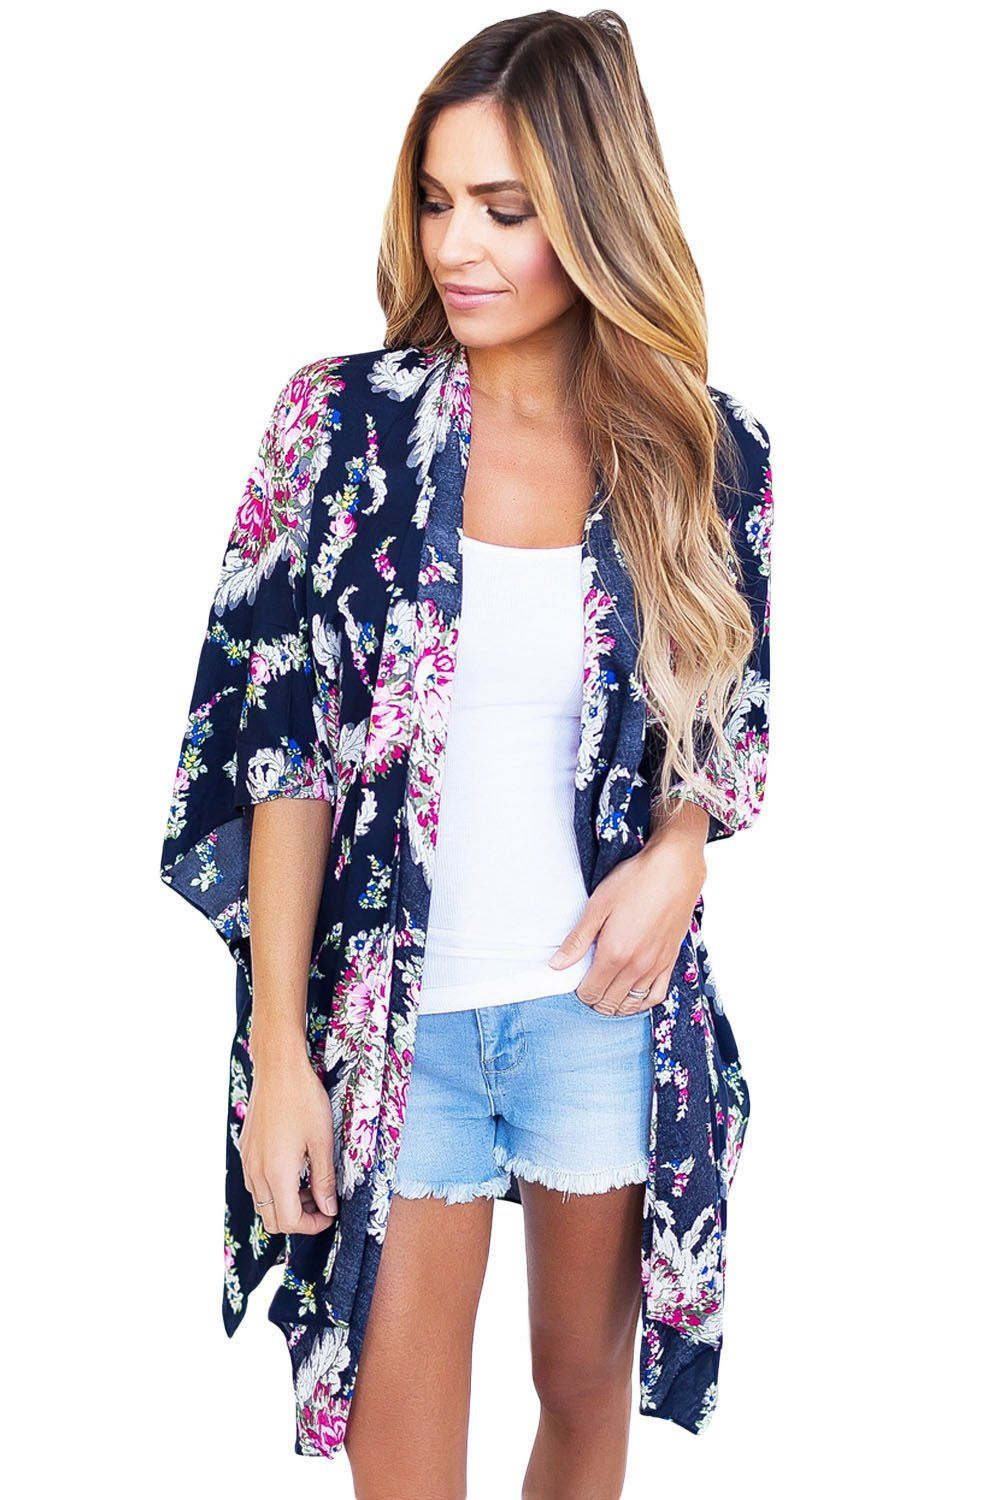 This gorgeous kimono is made for spring afternoons with your